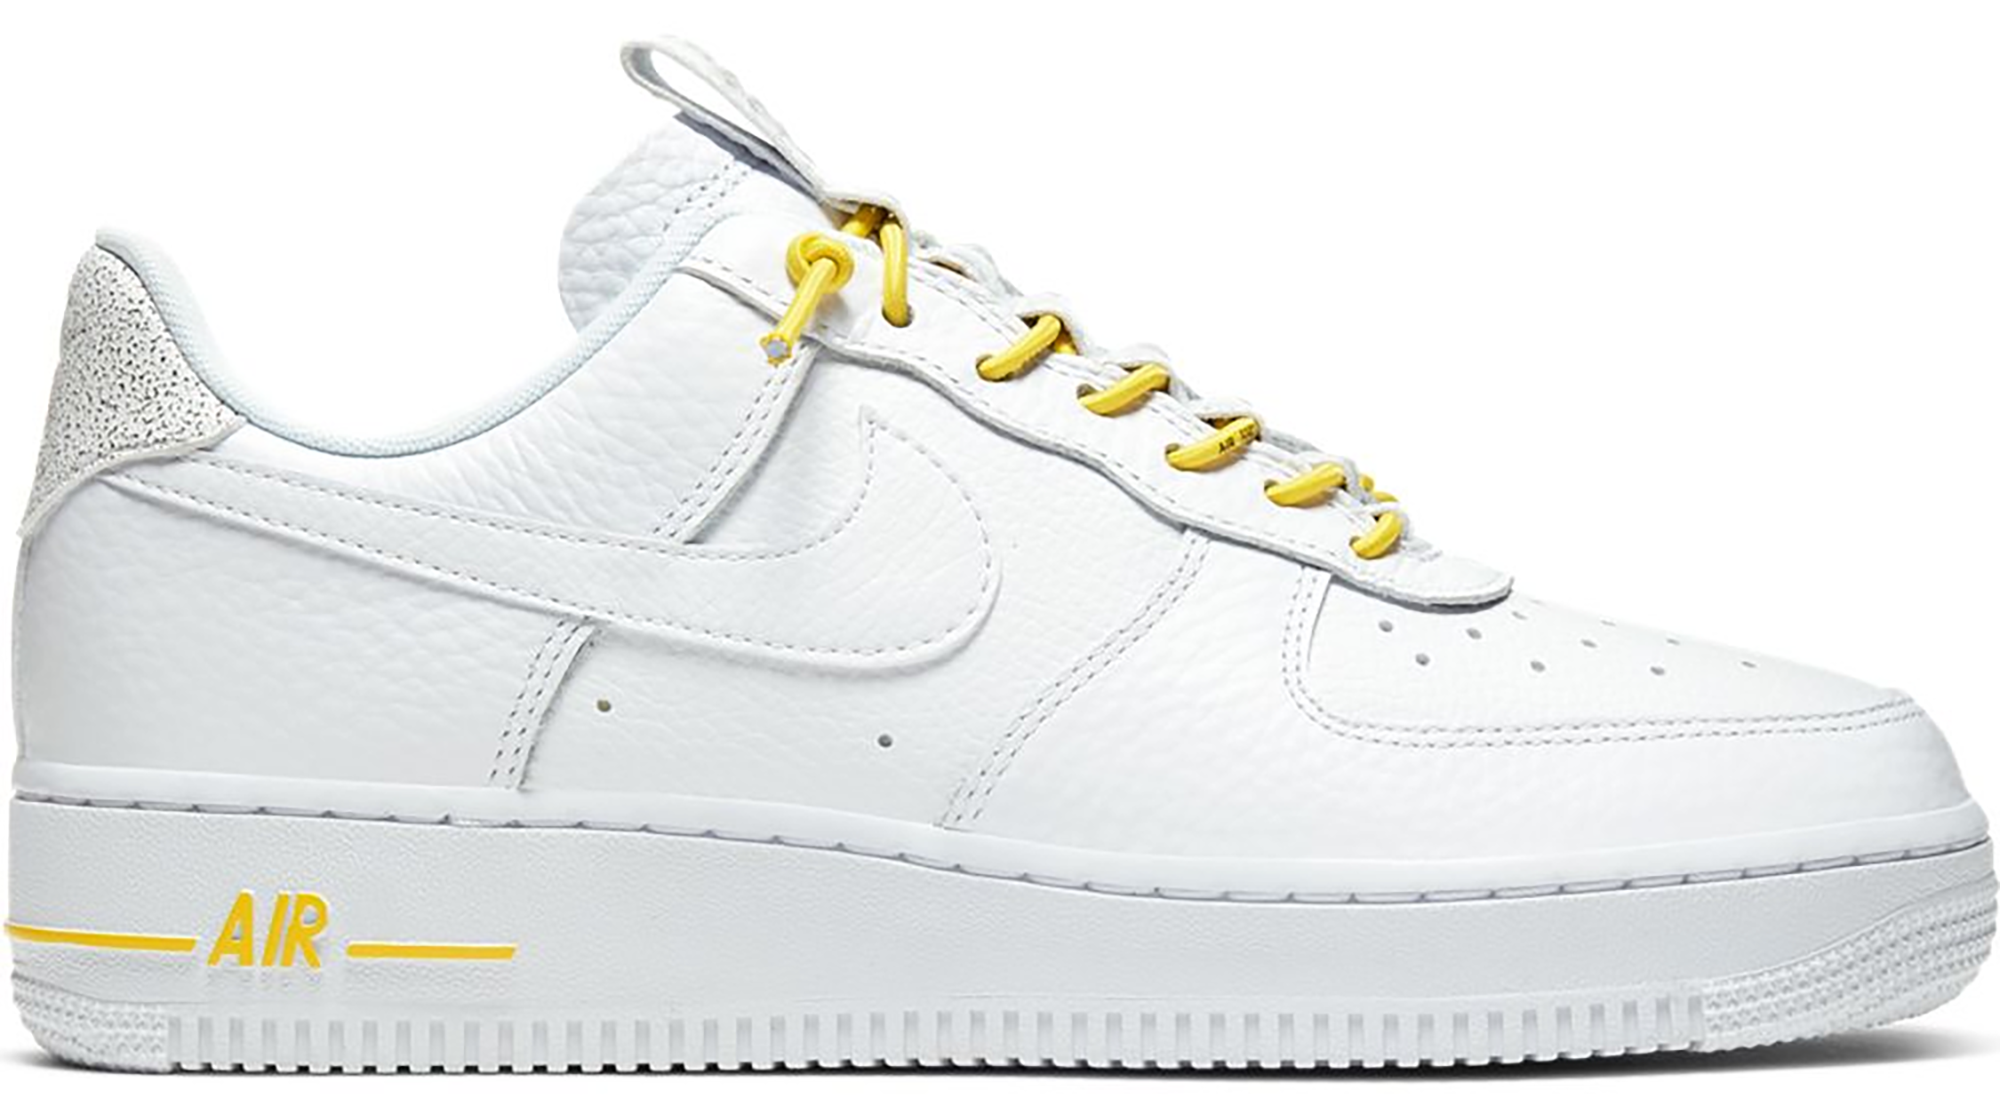 Nike Air Force 1 Low Lux White Chrome